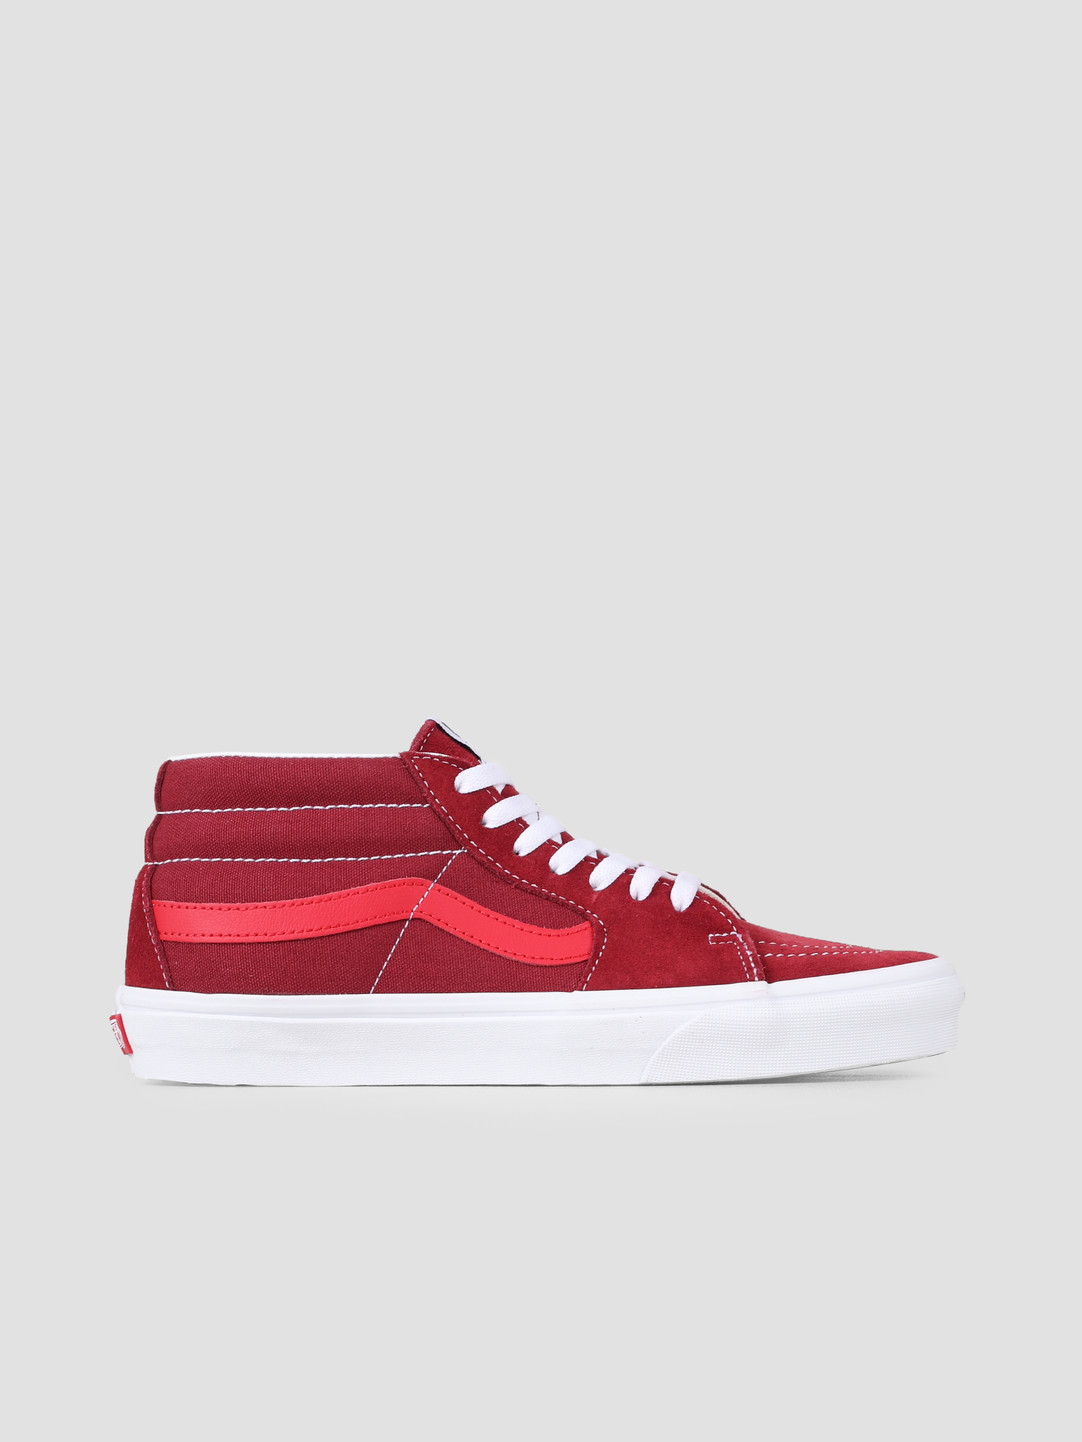 shades of big discount of 2019 50% off Vans UA Sk8-Mid Retro Sport Biking Red Poinsettia VN0A3WM3VXZ1